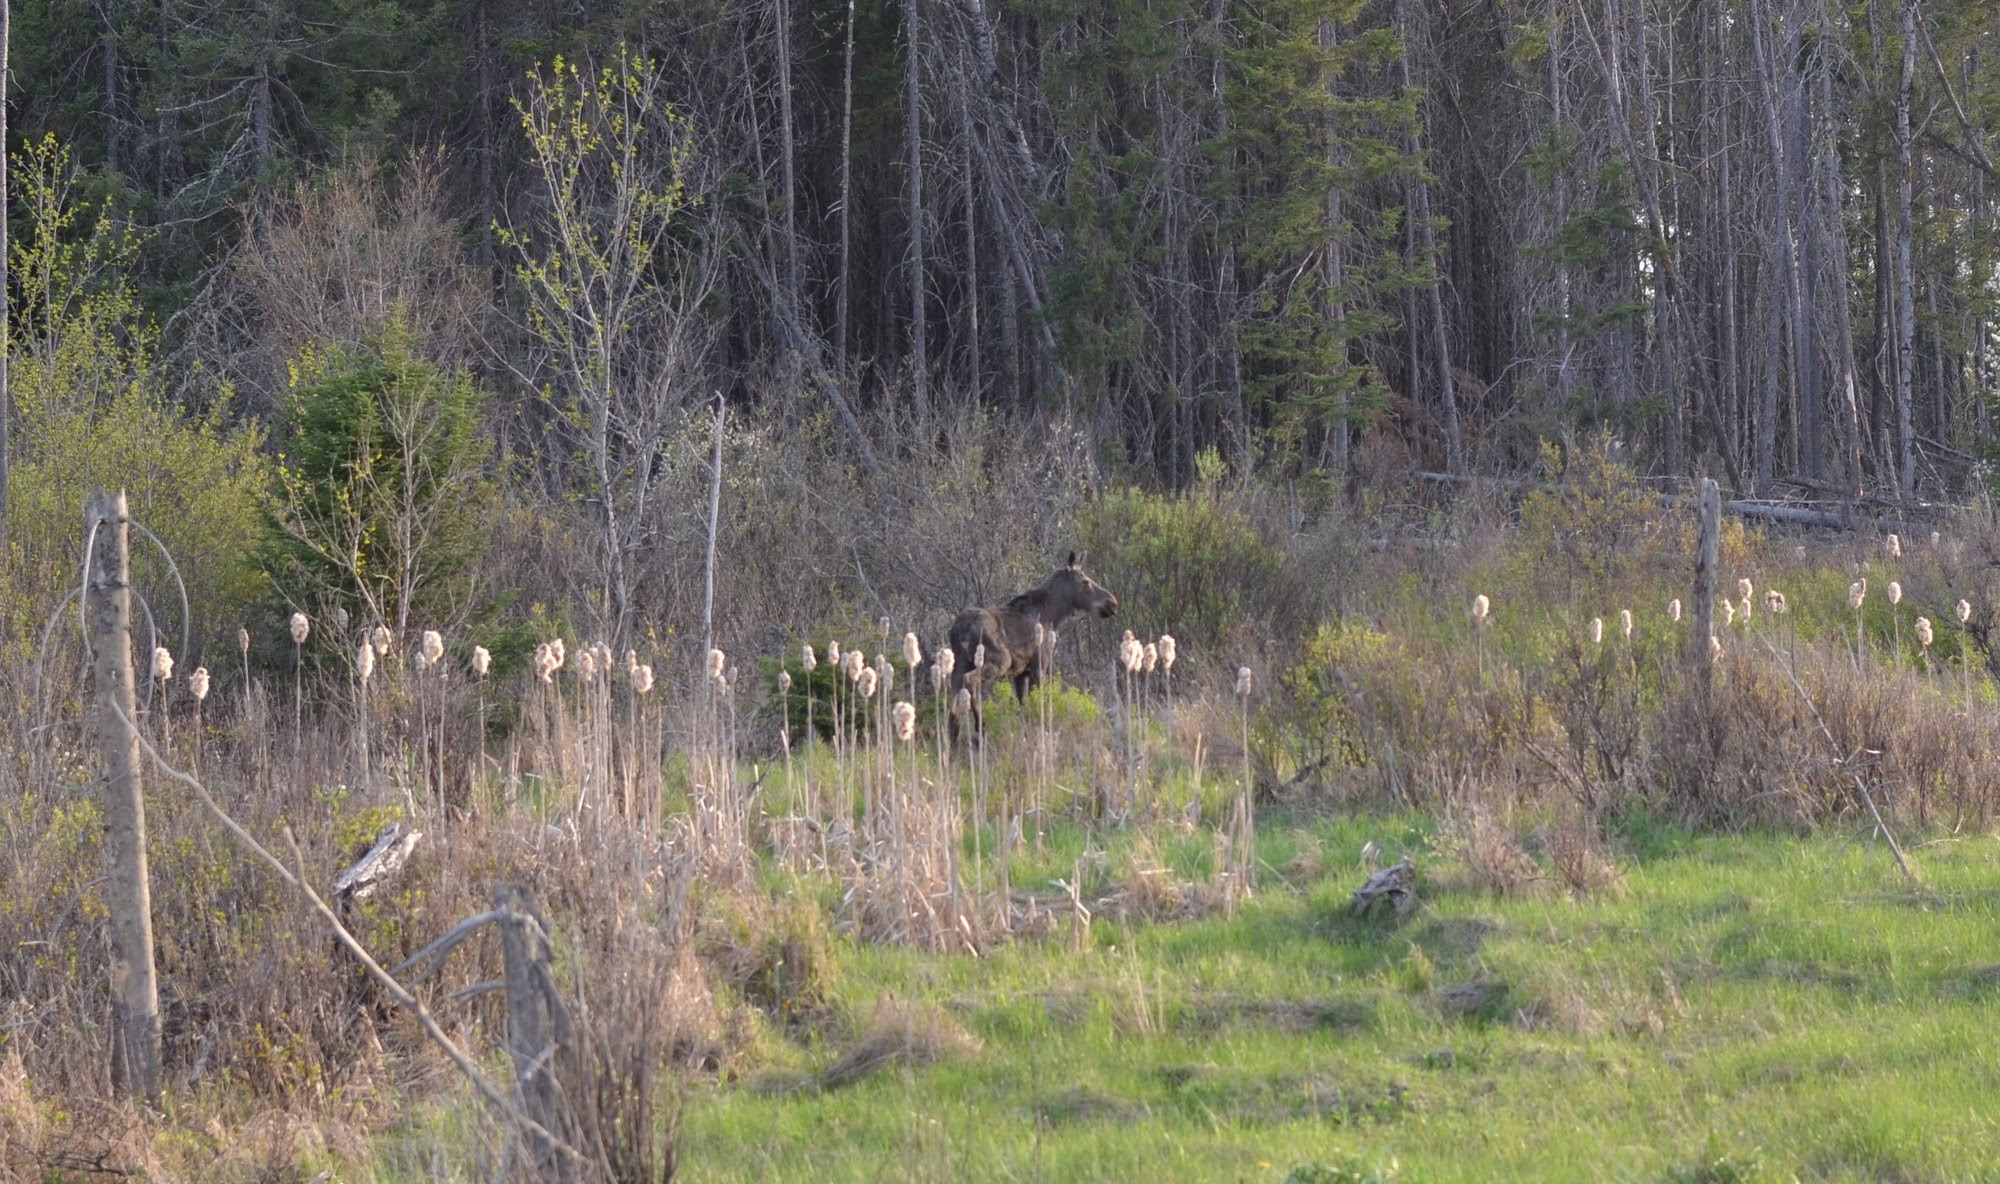 A moose walk through a wetland along U.S. 41 in western Marquette County in May.